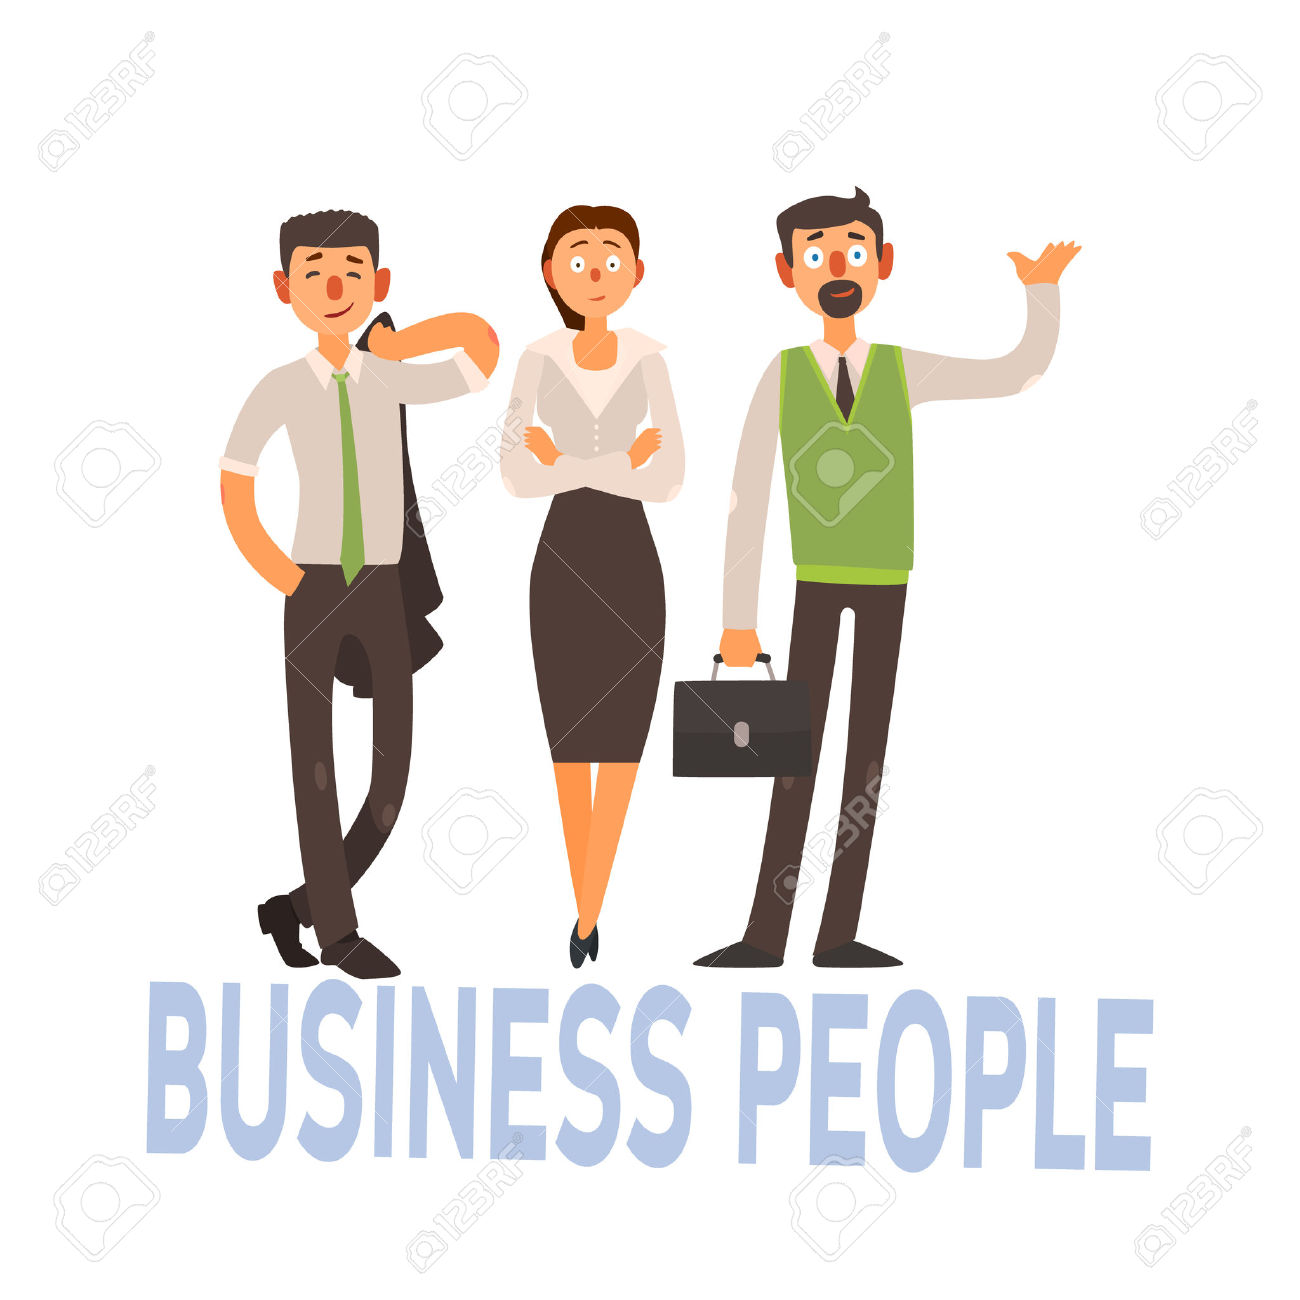 Business People Set Of Three Person In Office Dress Code Clothes.